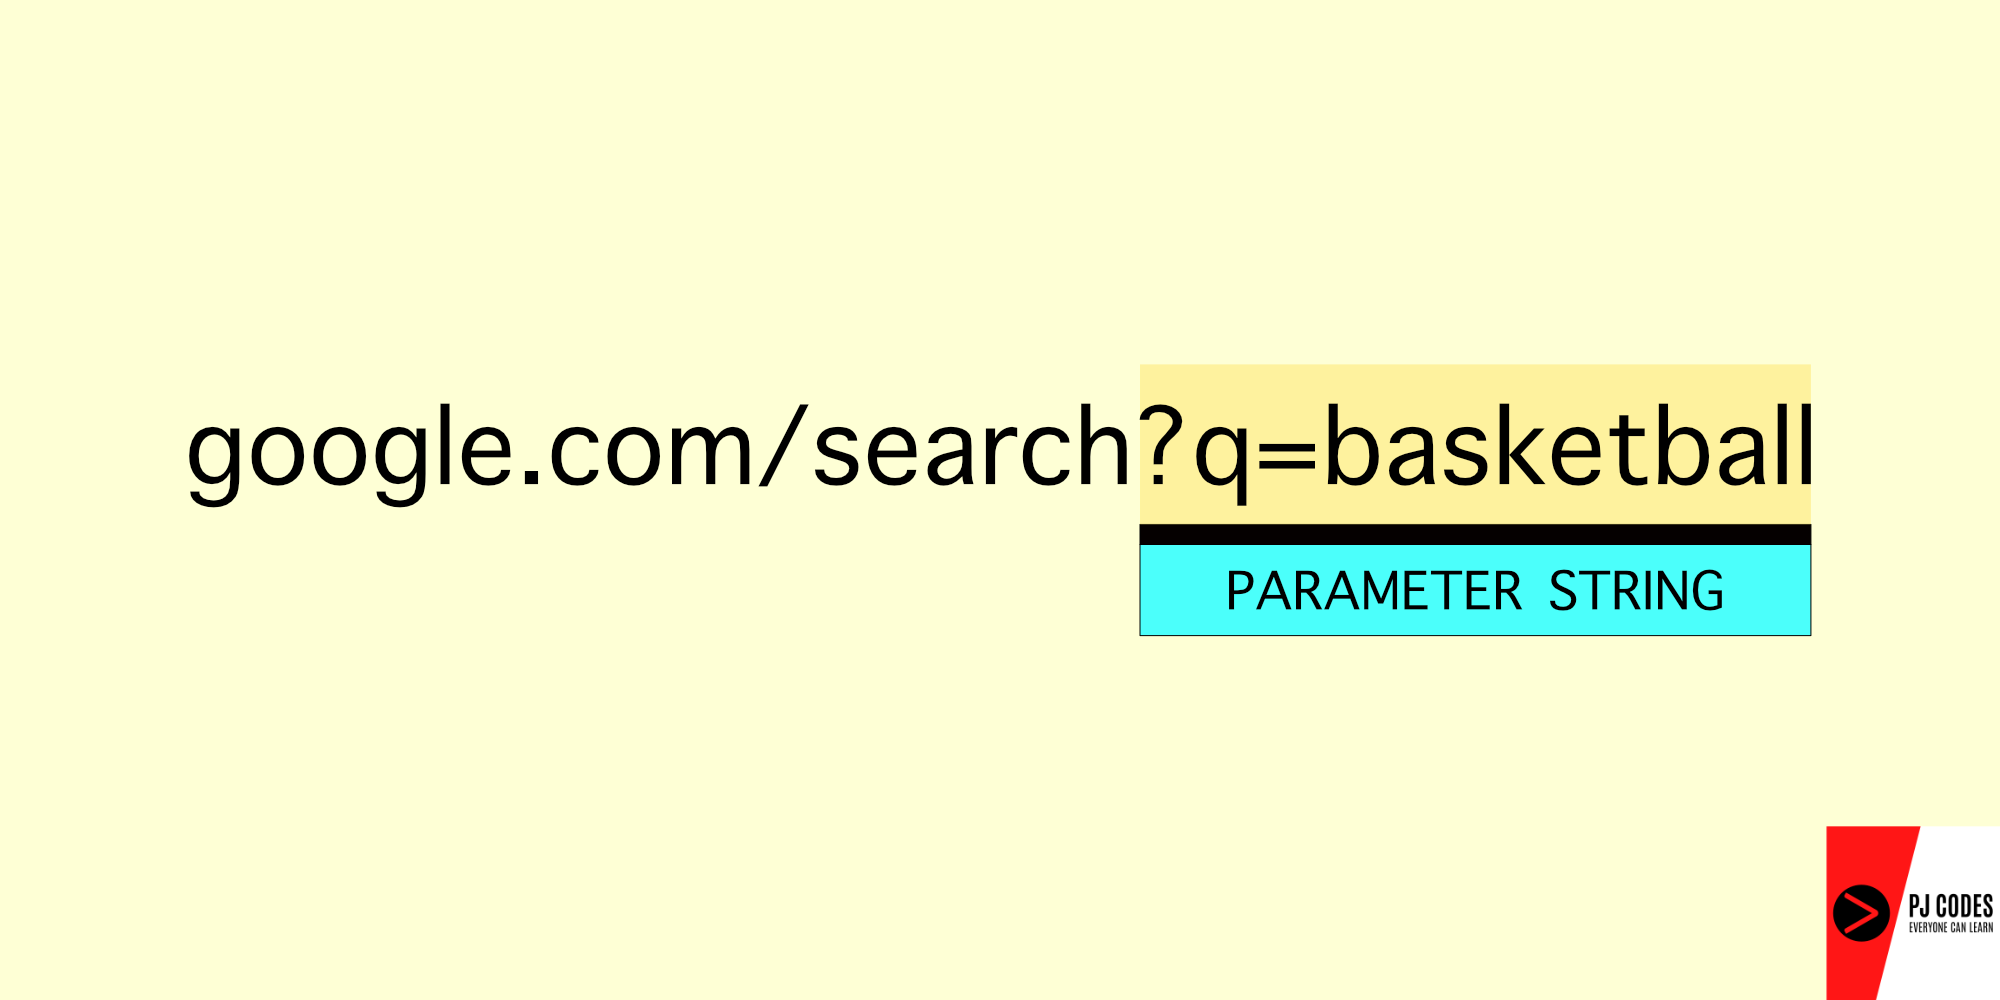 Image of a search query